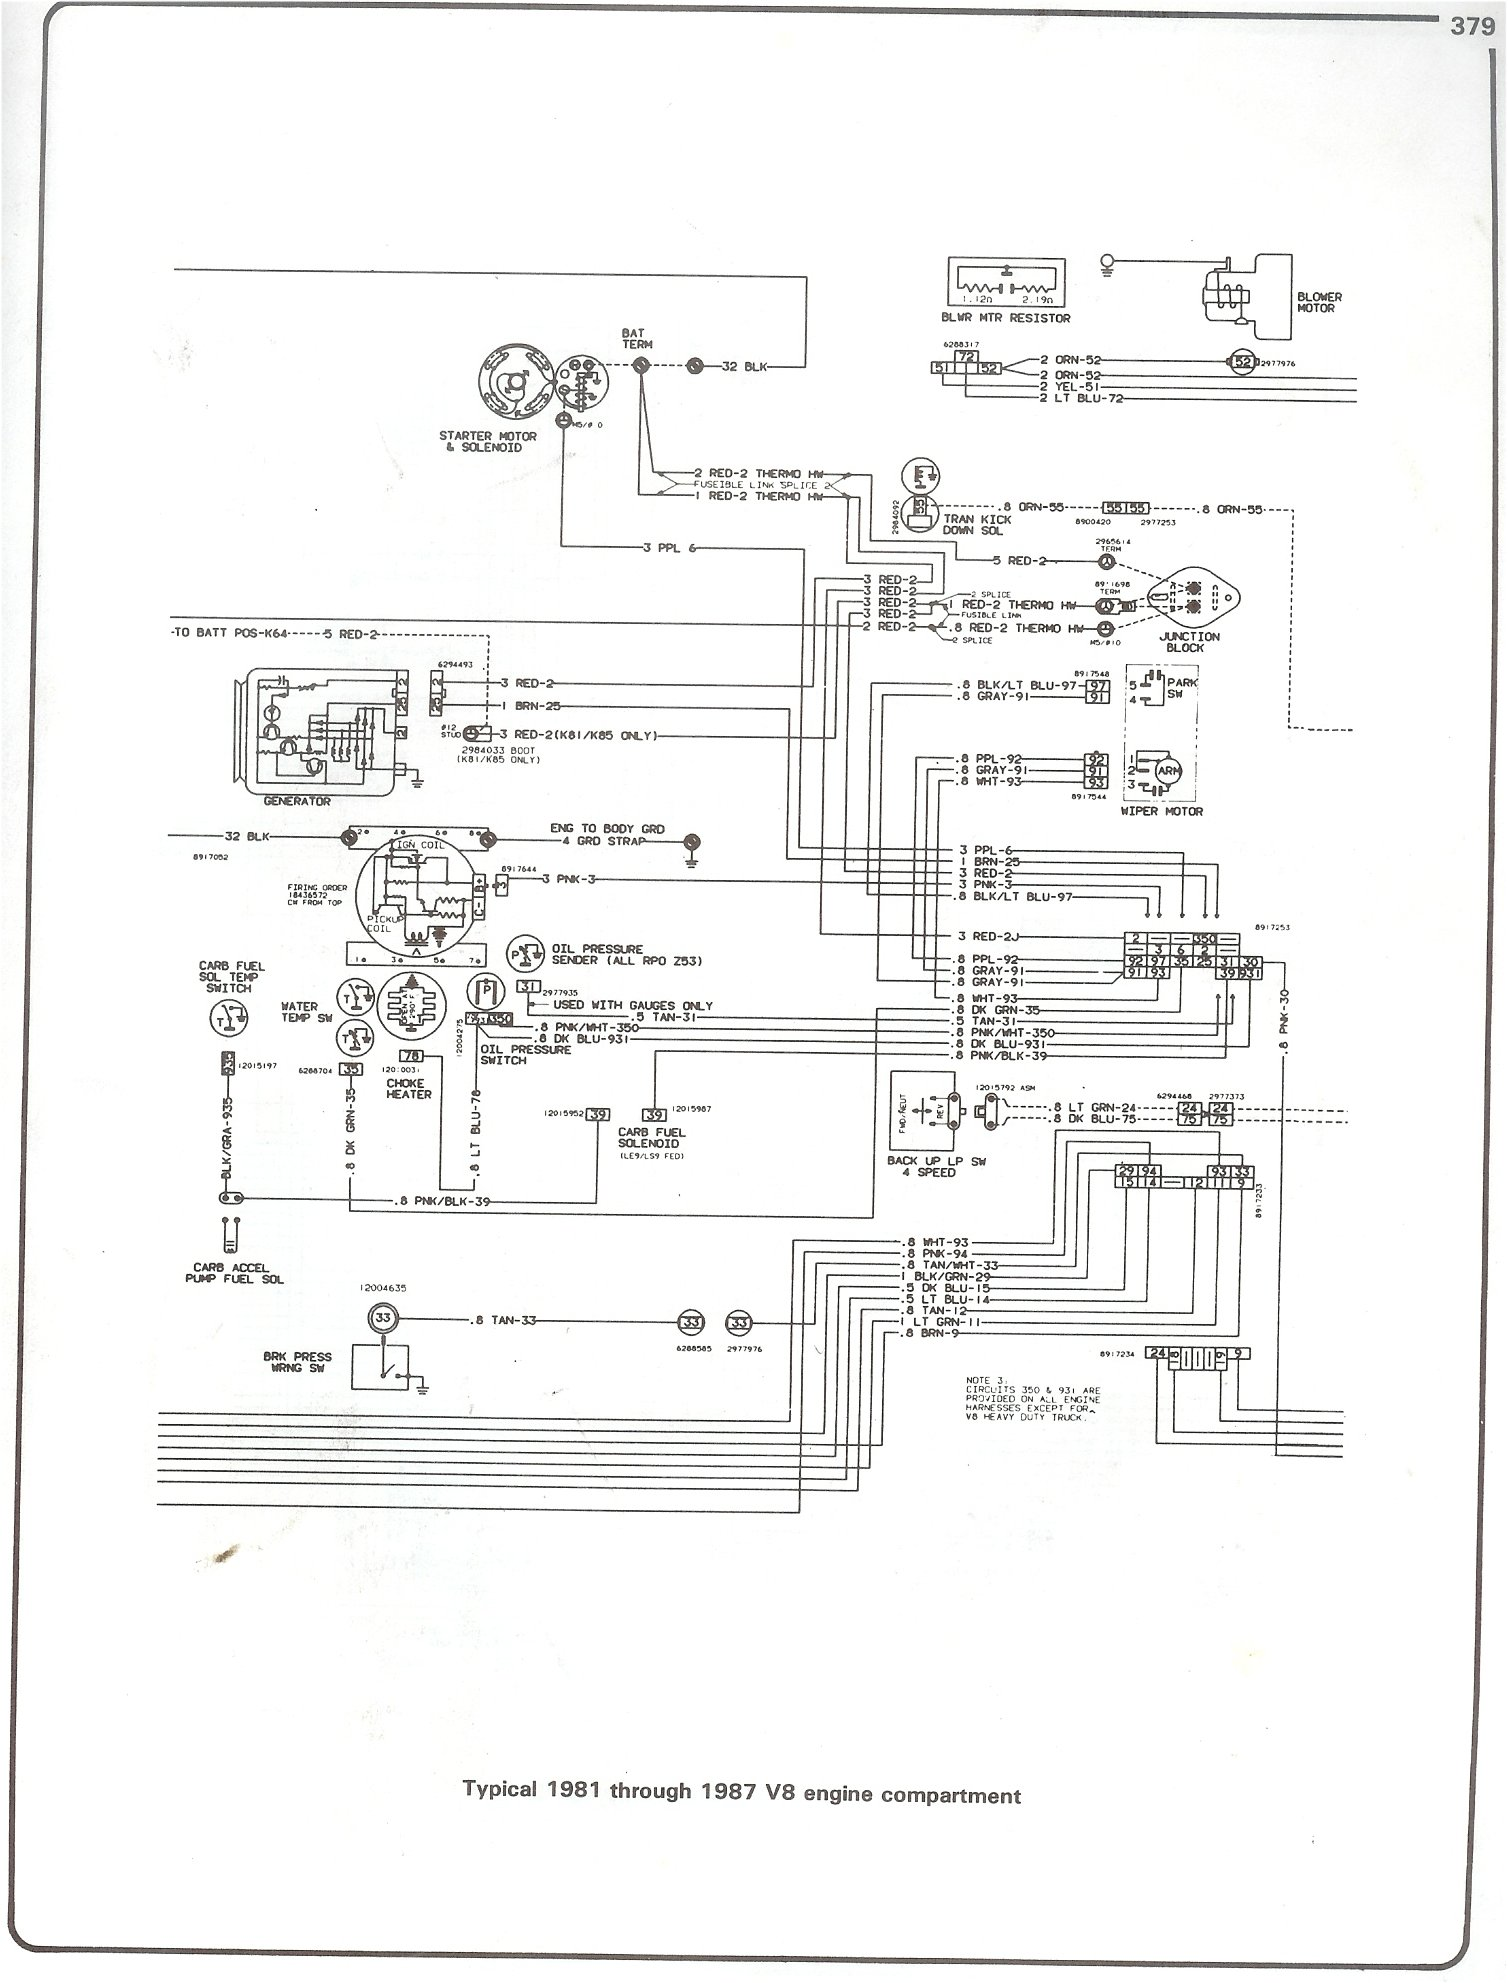 V8 Engine Diagram Color Wiring Diagrams Mercury 350 1977 Chevy Ignition Schematic Electrical Complete 73 87